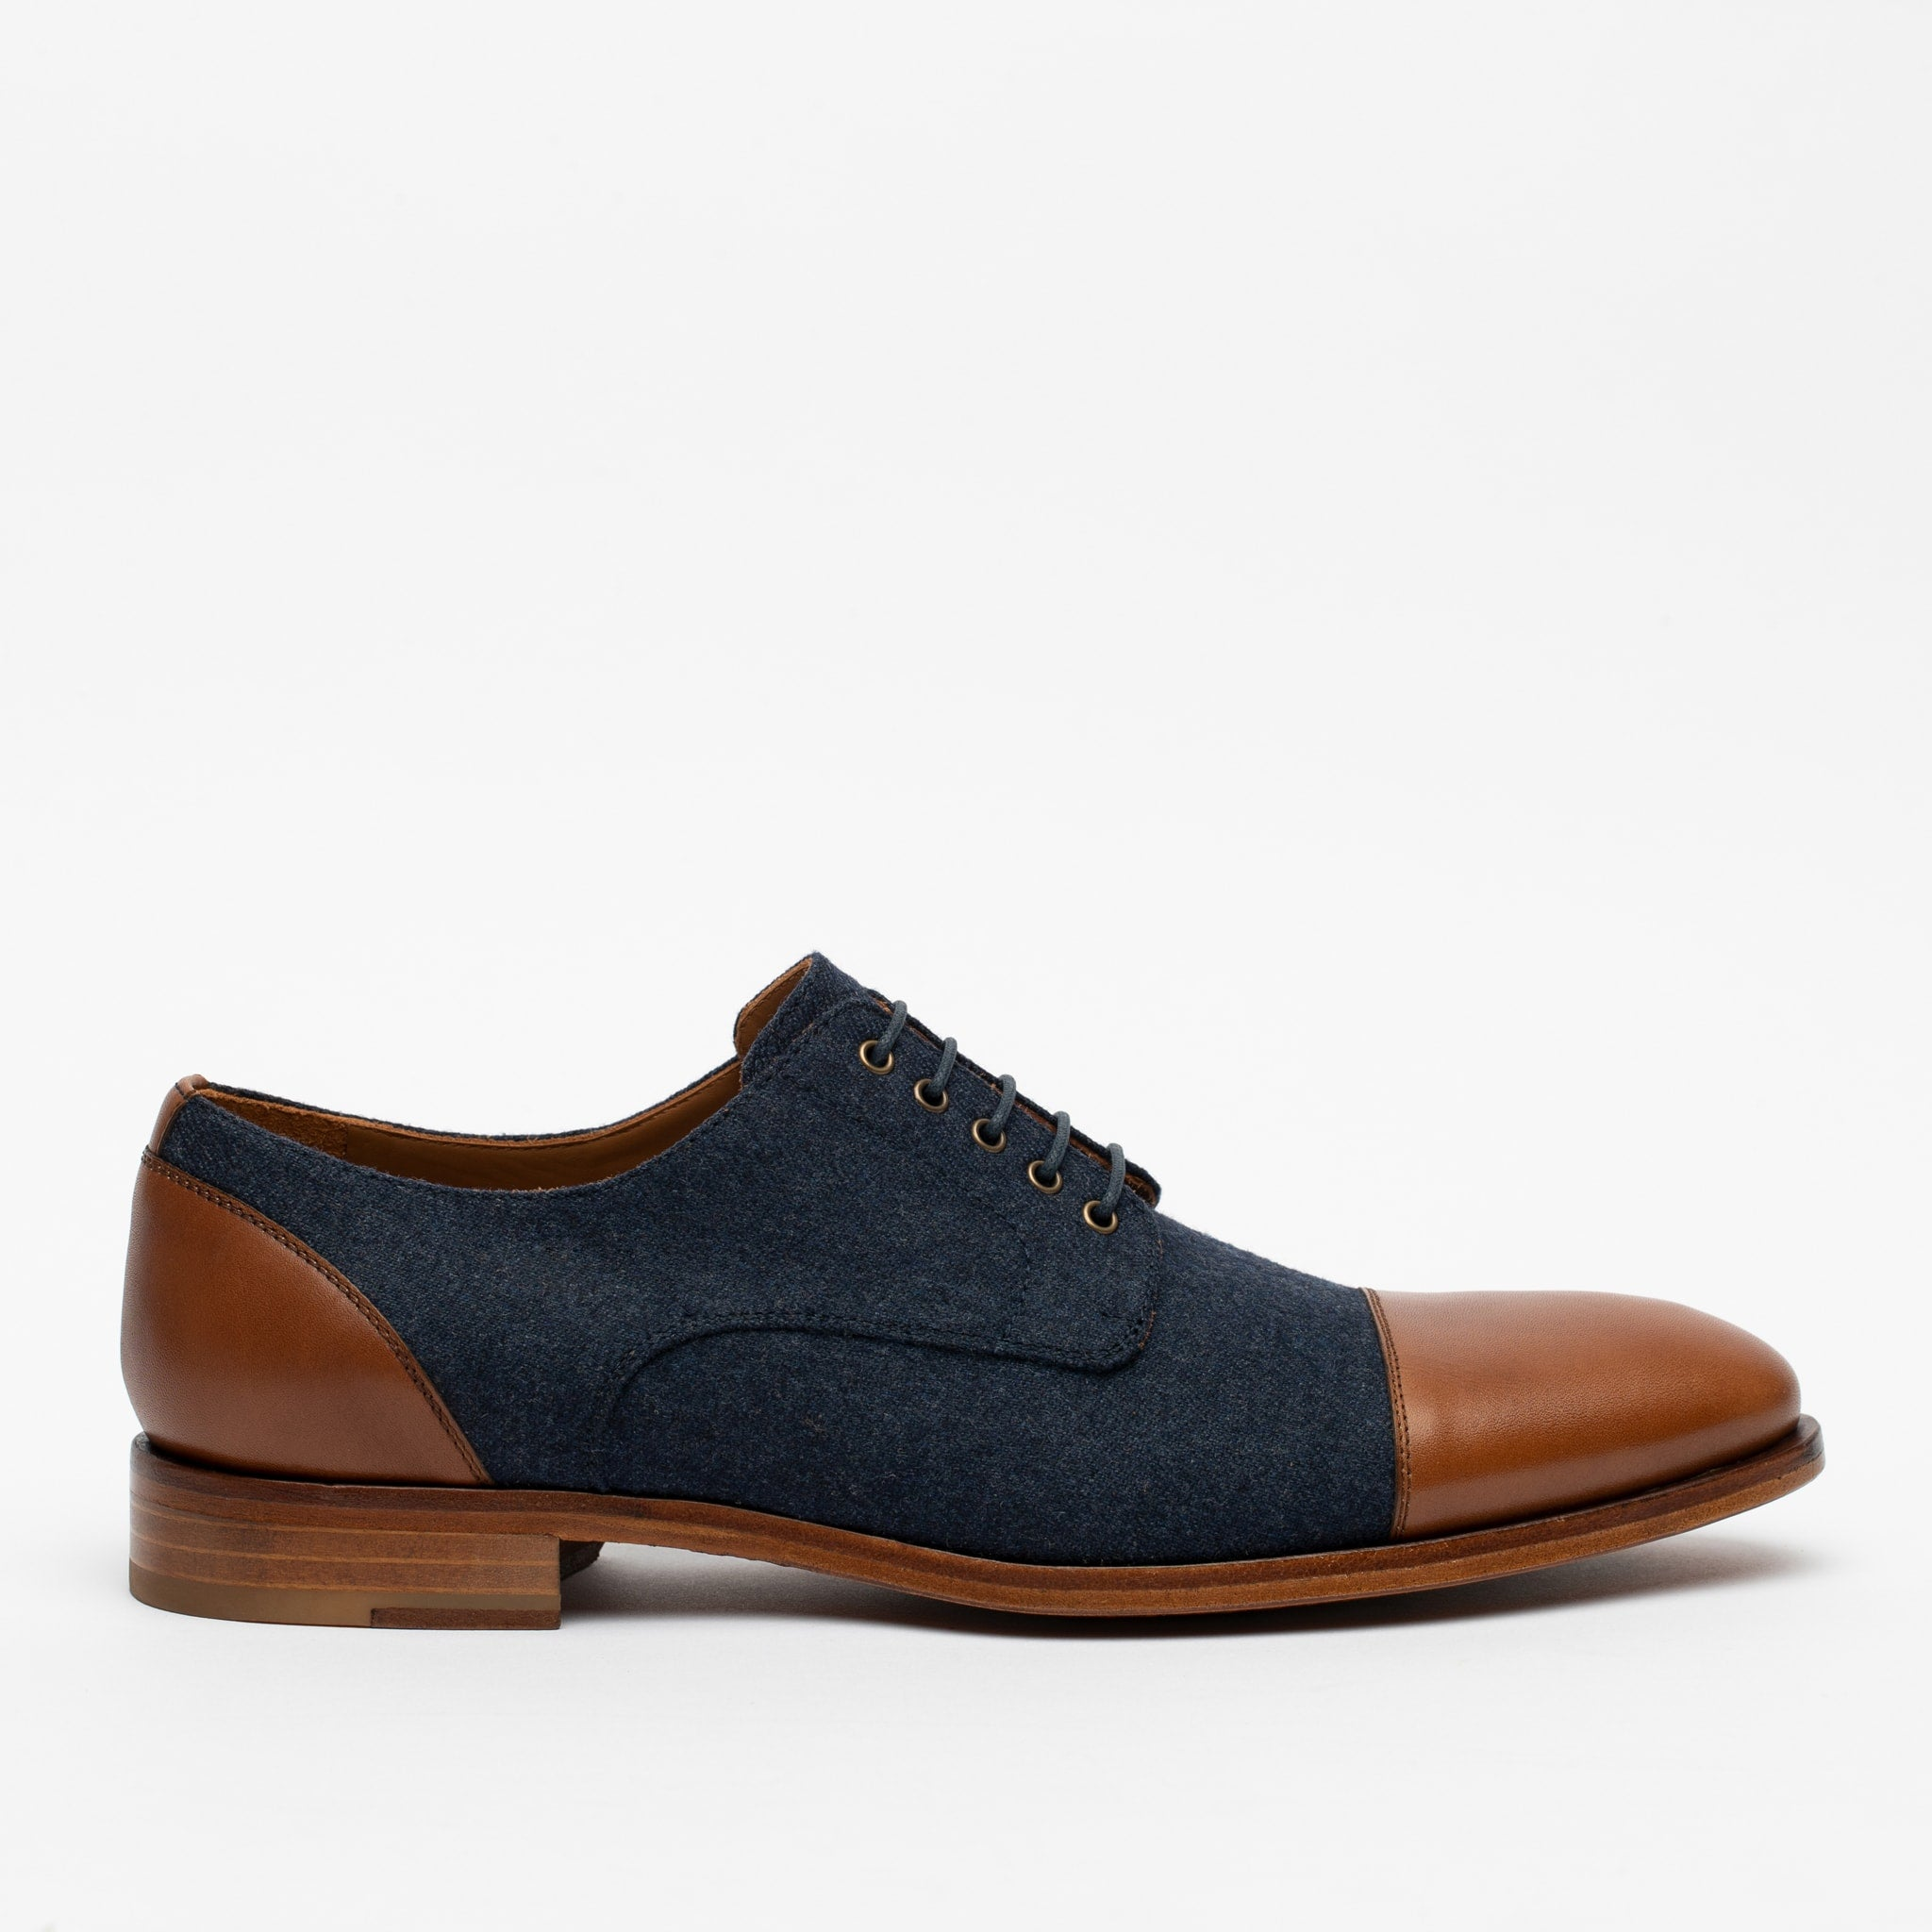 Jack Shoe in Navy side view